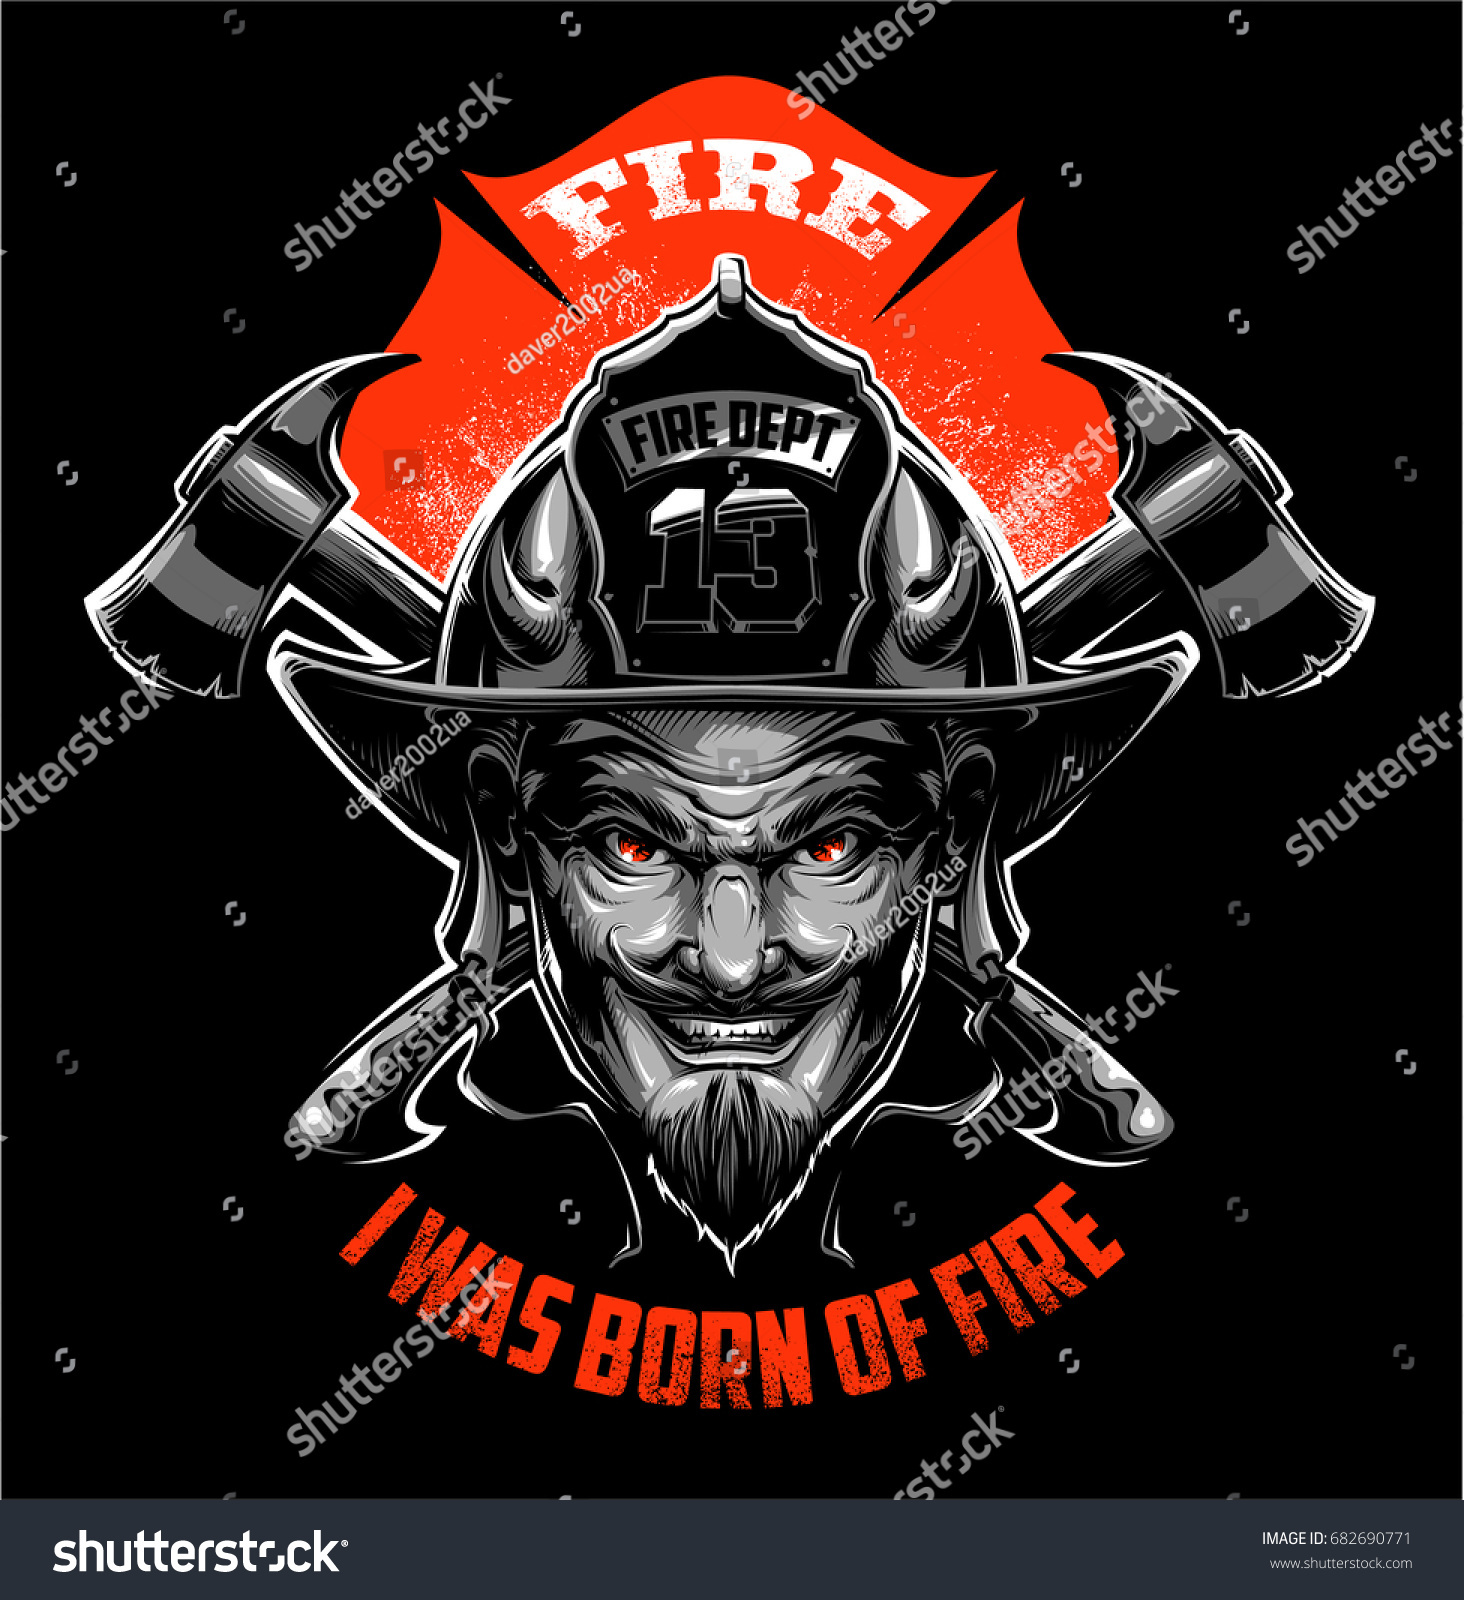 66e00639 Firefighter T Shirt Design Ideas